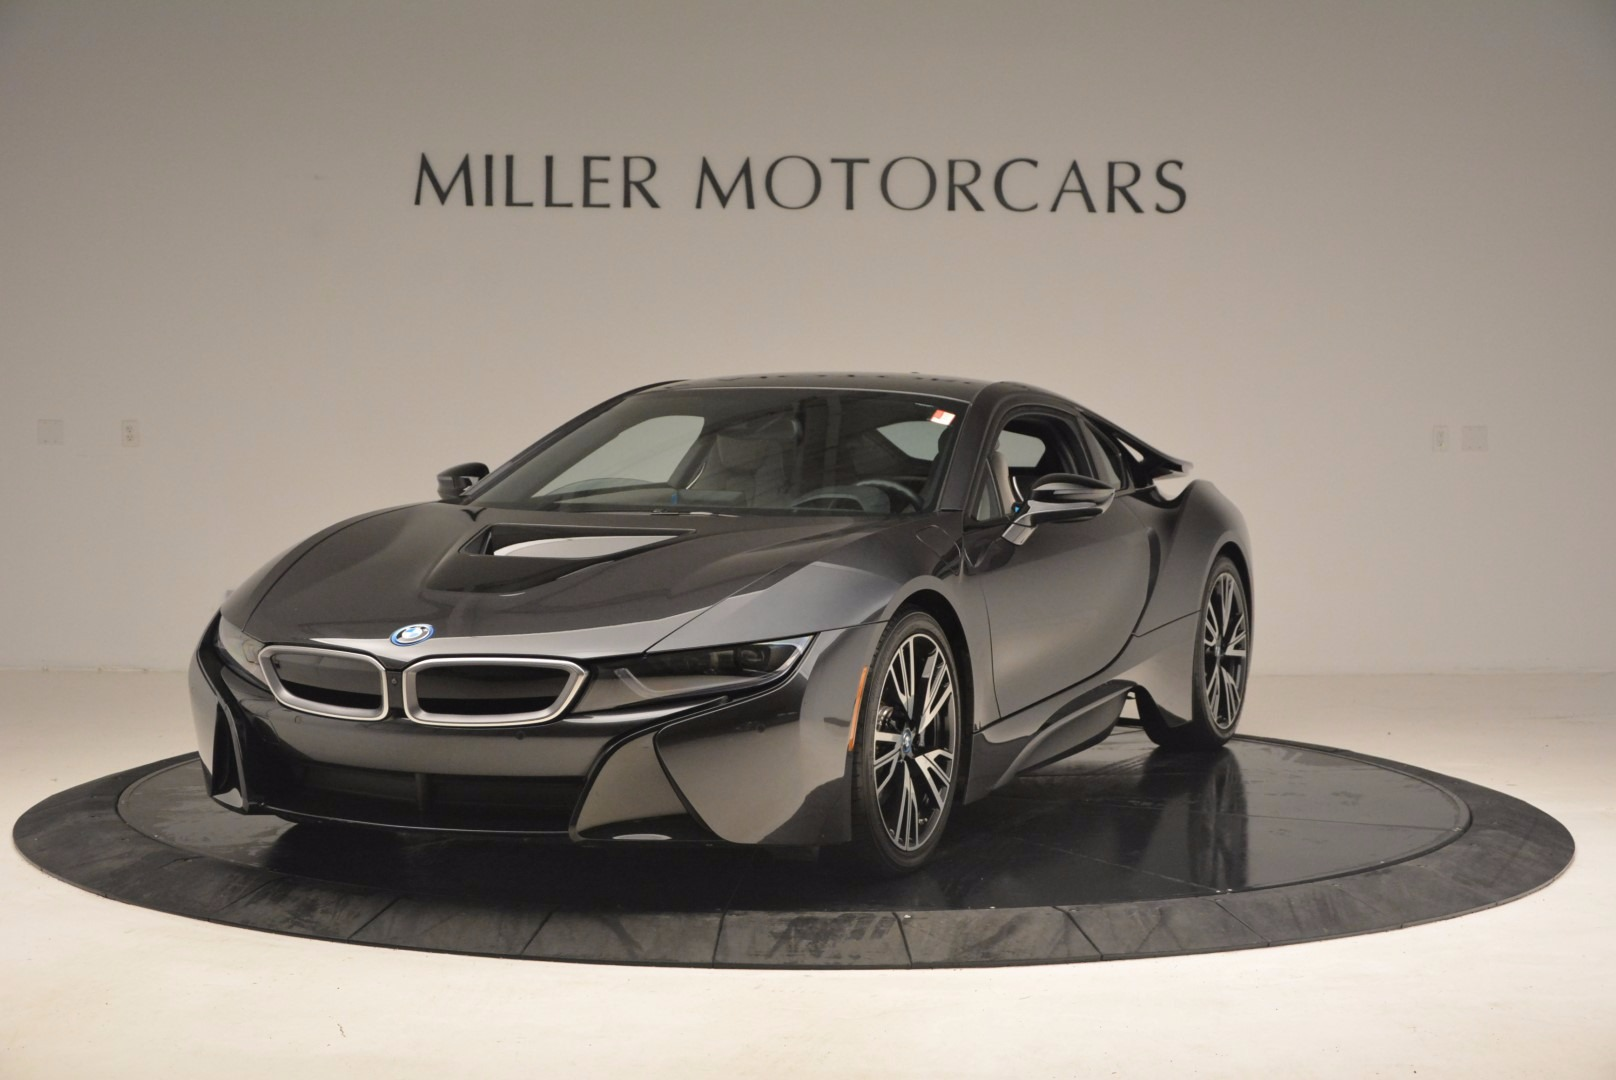 Used 2014 BMW i8 for sale Sold at Bentley Greenwich in Greenwich CT 06830 1